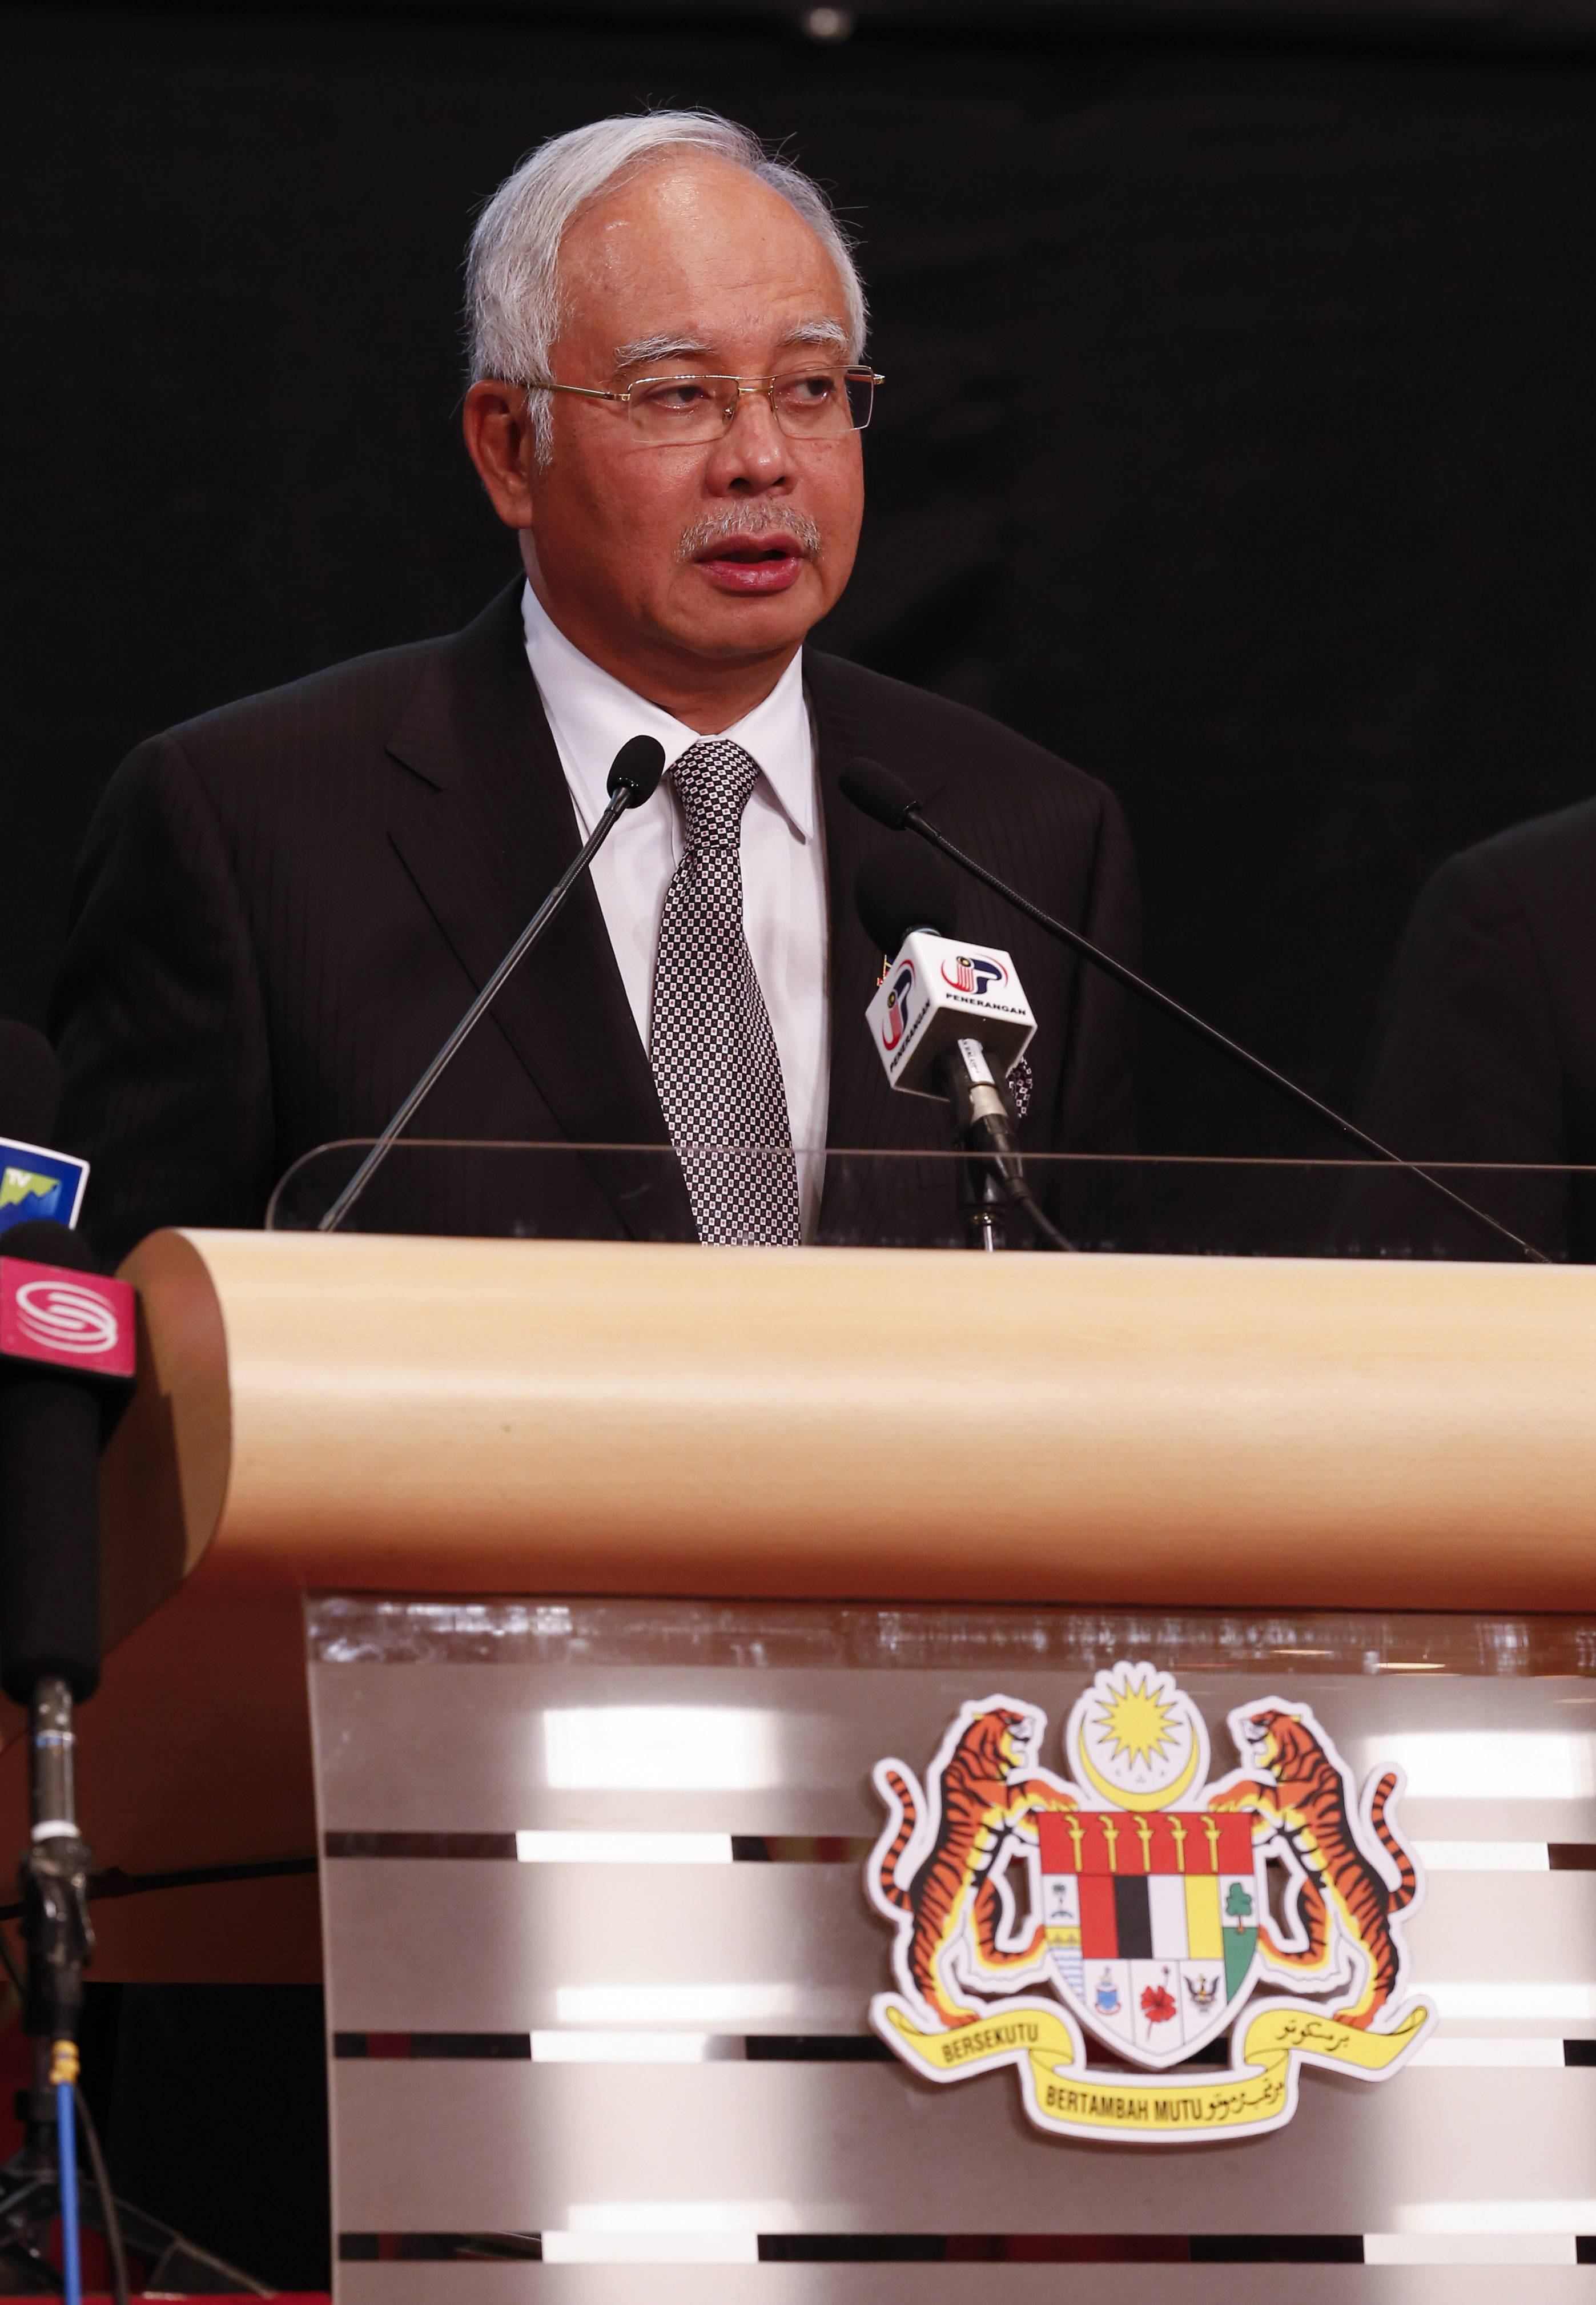 Malaysia's Prime Minister Najib Razak speaks Monday during the press conference for the missing Malaysia Airline, MH370 at Putra World Trade Centre (PWTC) in Kuala Lumpur, Malaysia. Razak says new data show missing plane plunged into southern Indian Ocean.